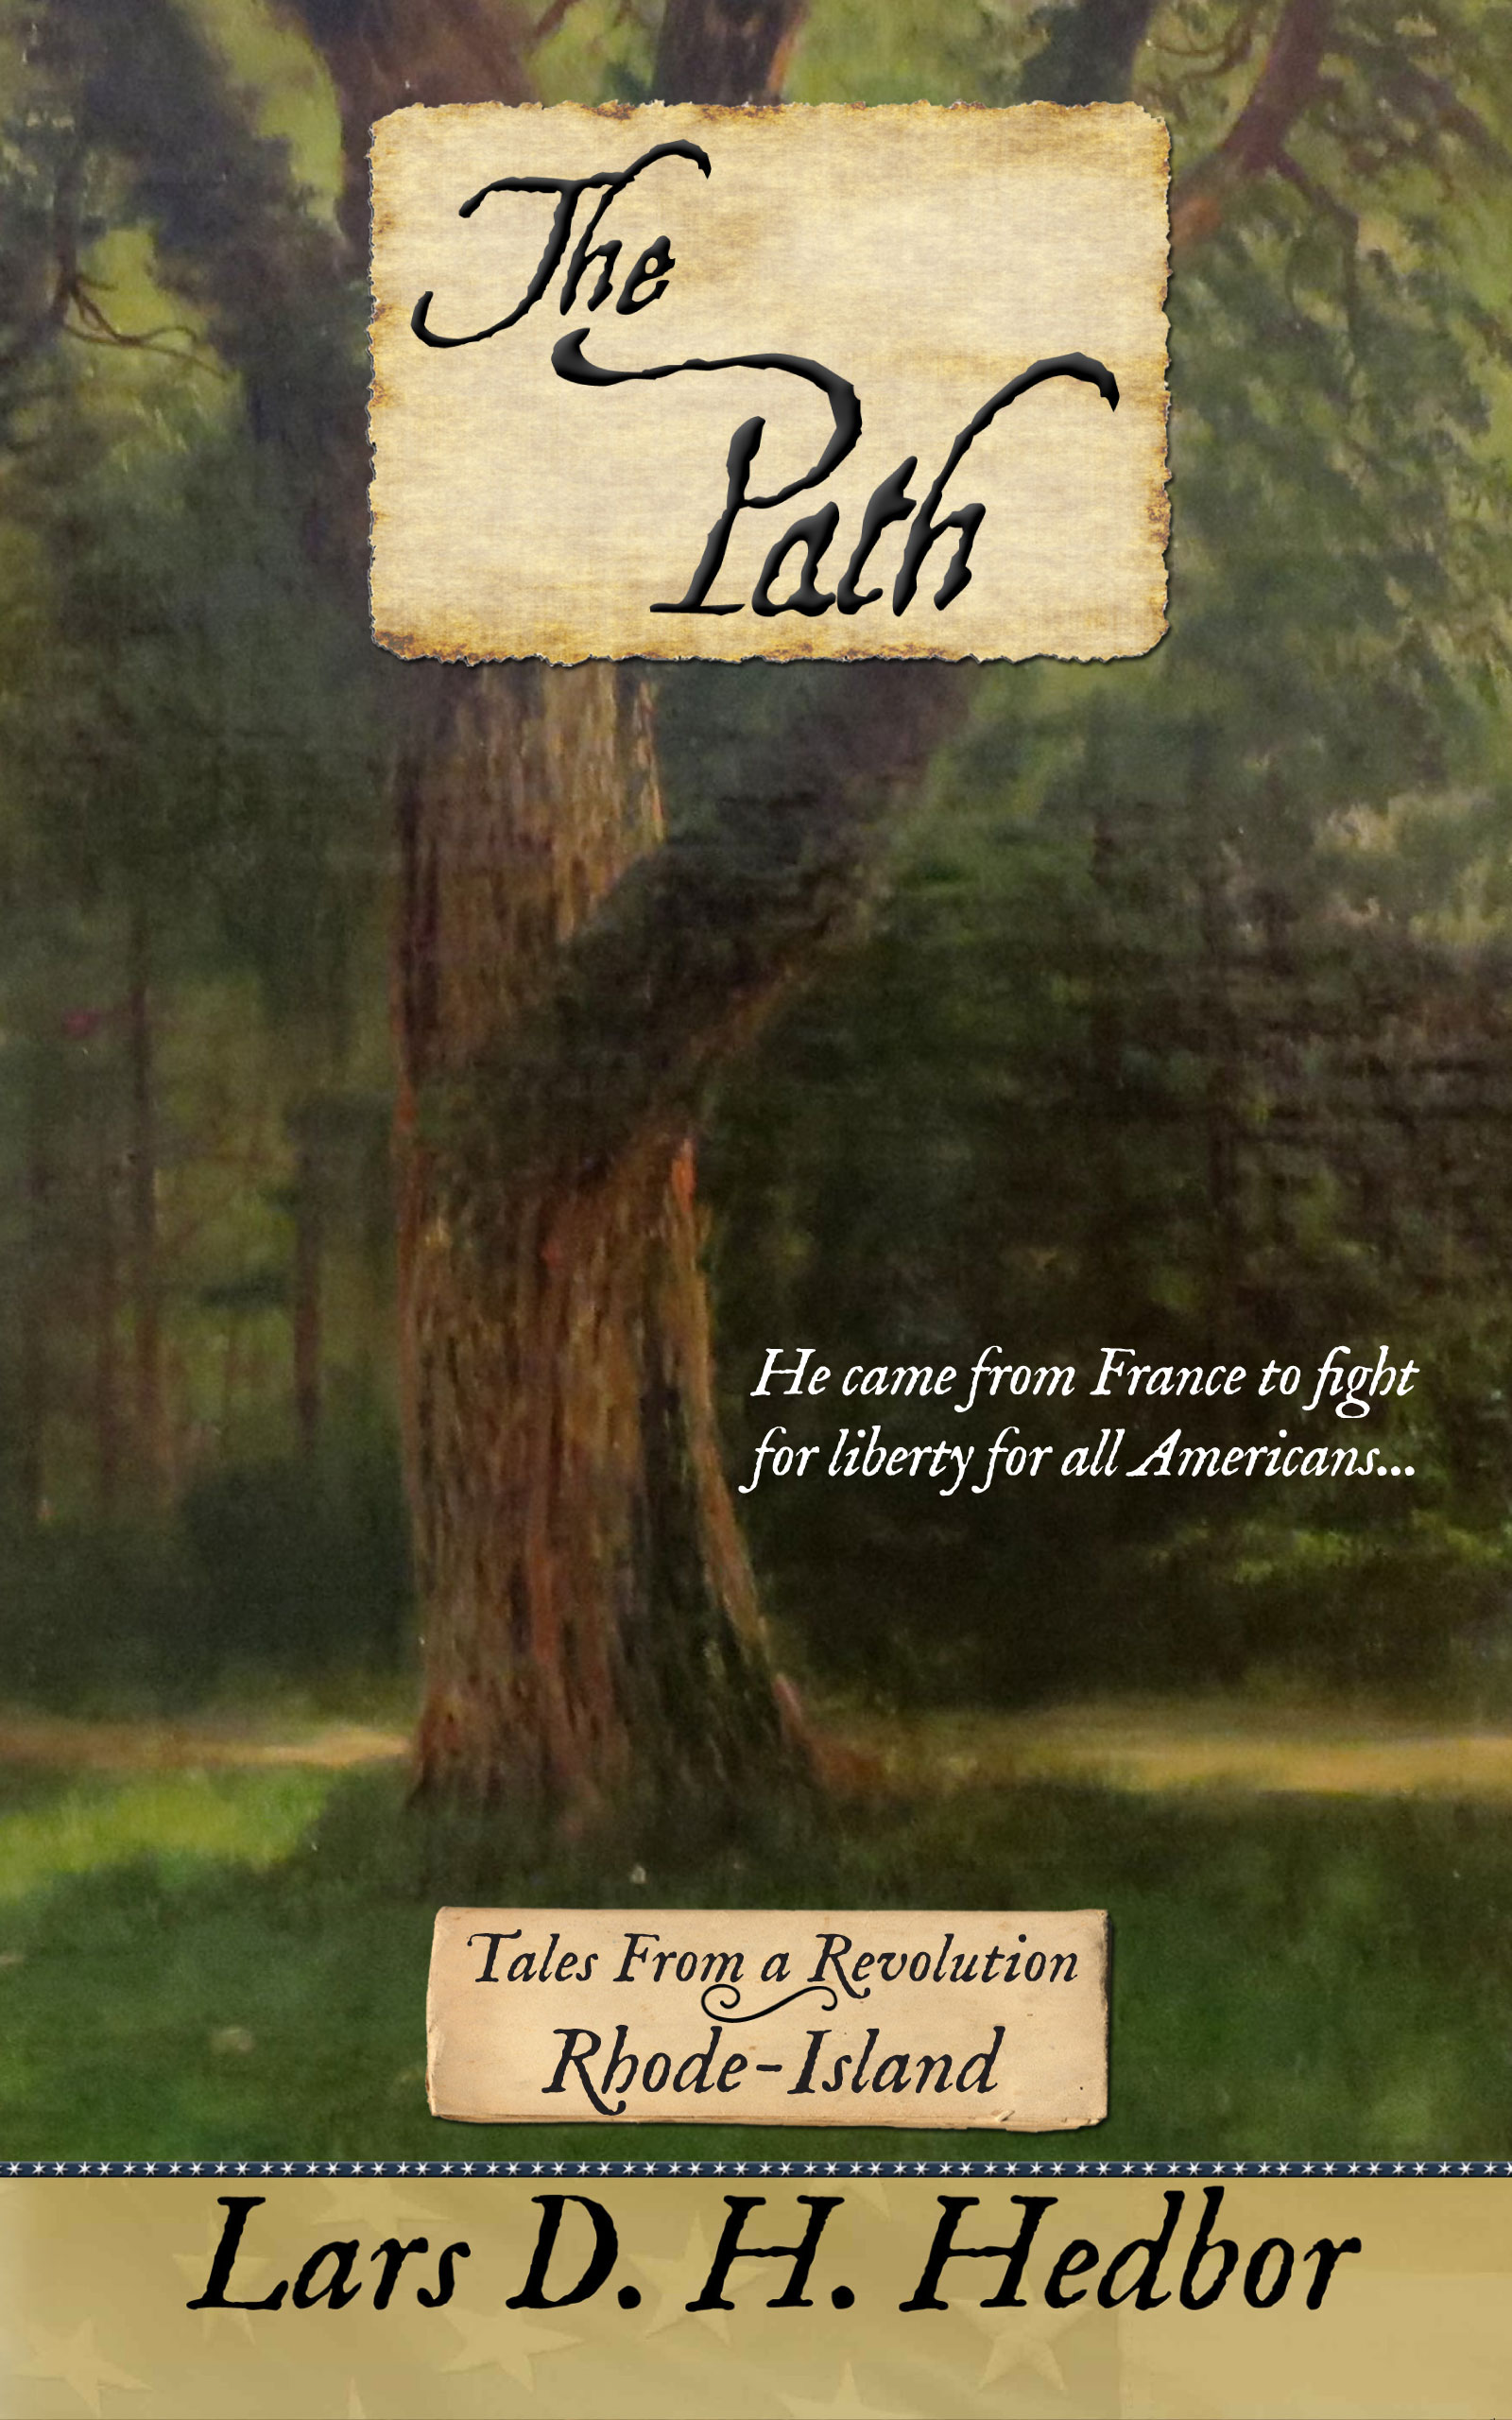 Cover image for The Path: Tales From a Revolution - Rhode-Island